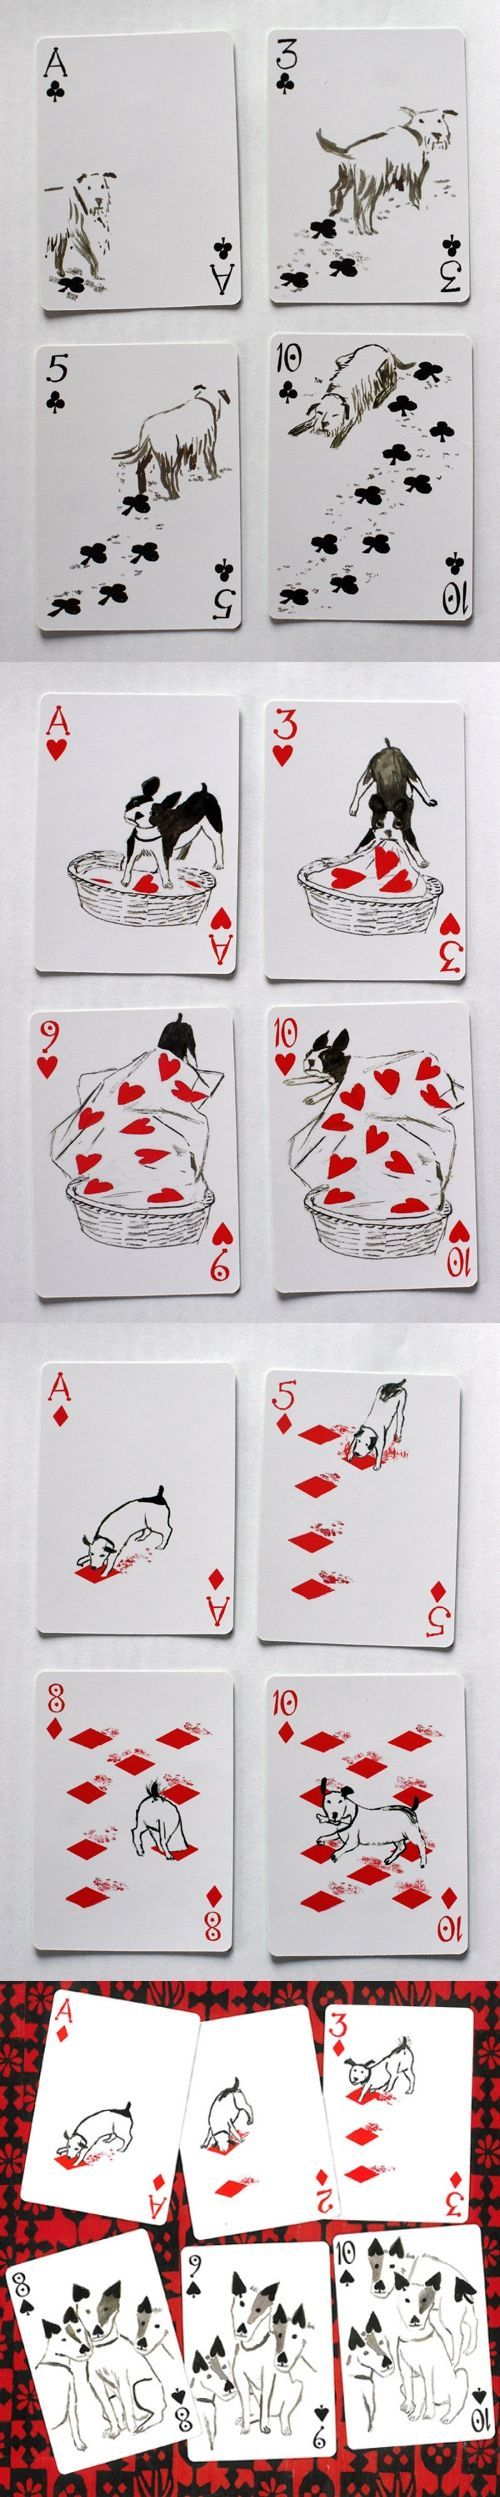 """This has to be one of the cutest decks of cards ever! """"Pack of Dogs"""" playing cards are from a series of four decks designed by John Littleboy in 2006, & produced by Inky Dinky. The pip cards have been transformed from the standard positions into a sequence of images which tell a story. The other three decks are Mermaid Queen, Bag of Bones, & Kitten Club. They're priced at"""